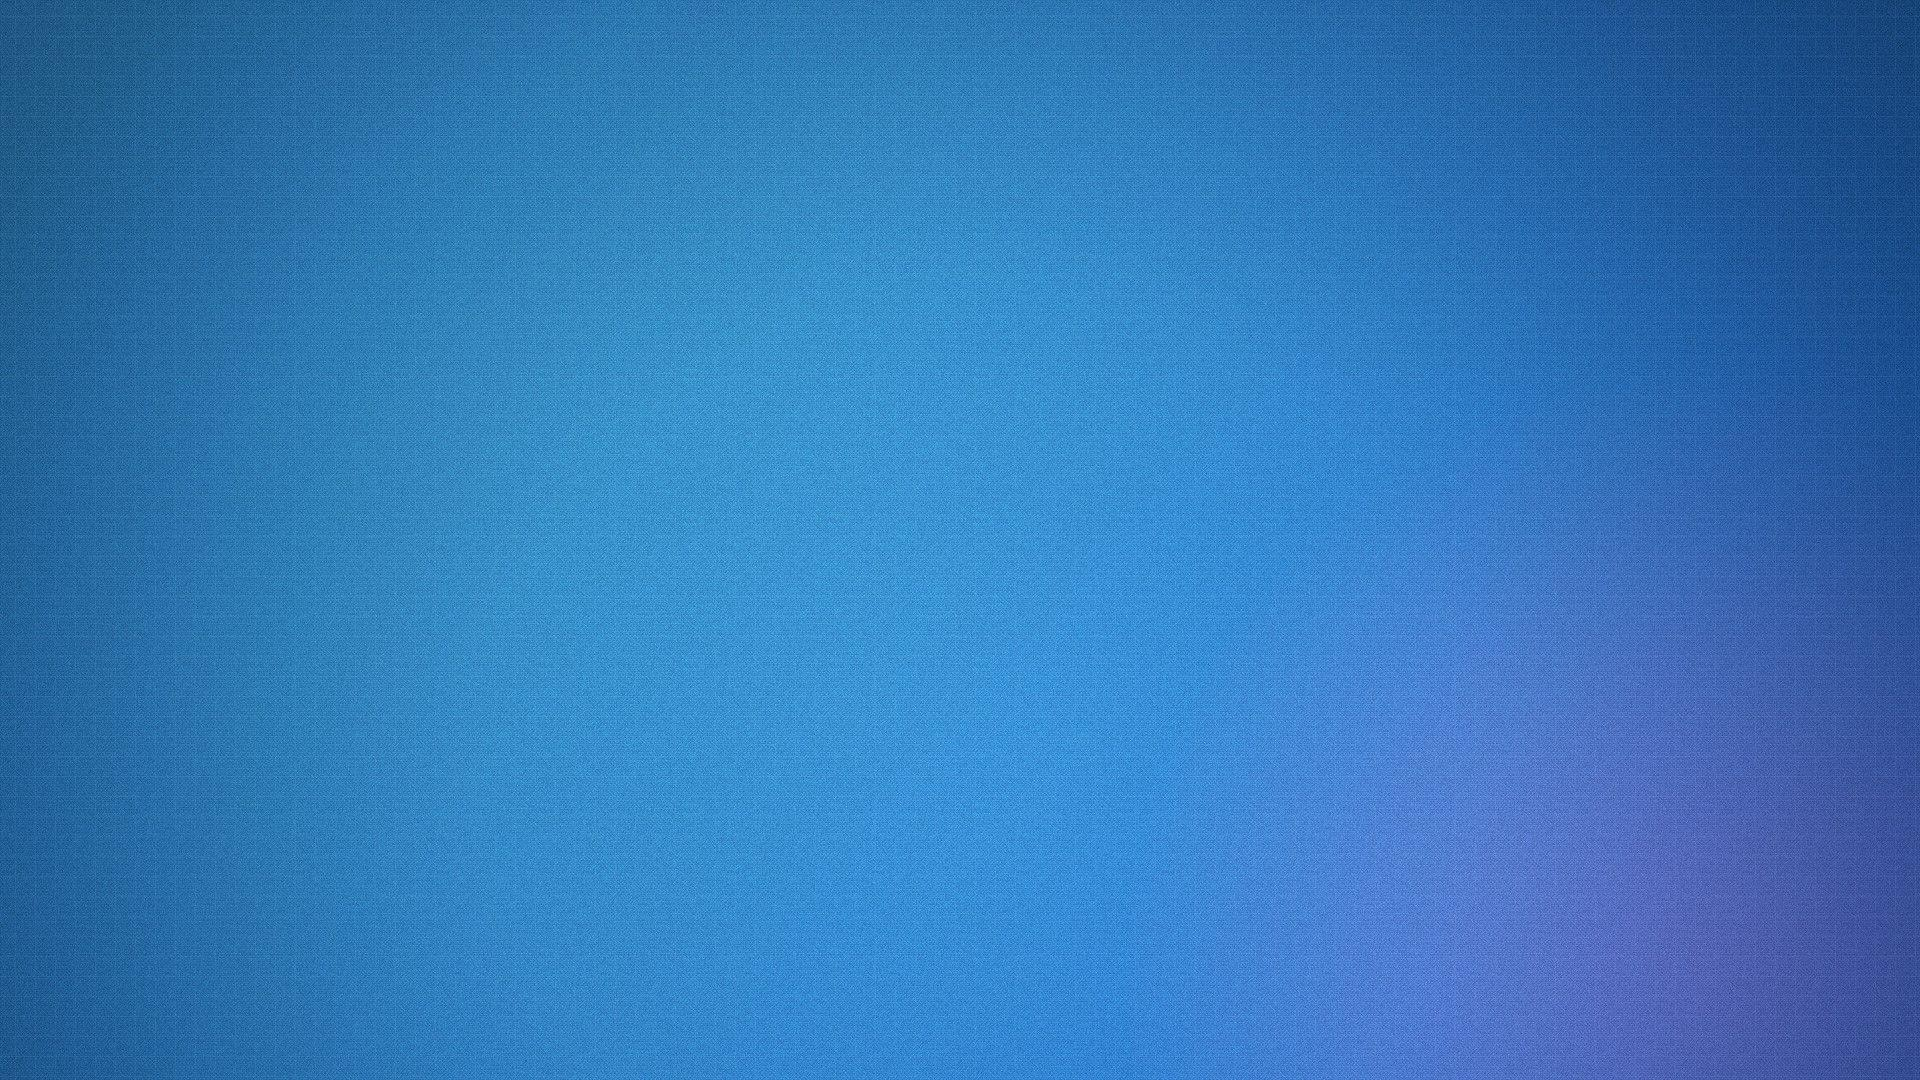 solid light blue wallpaper hd - photo #33